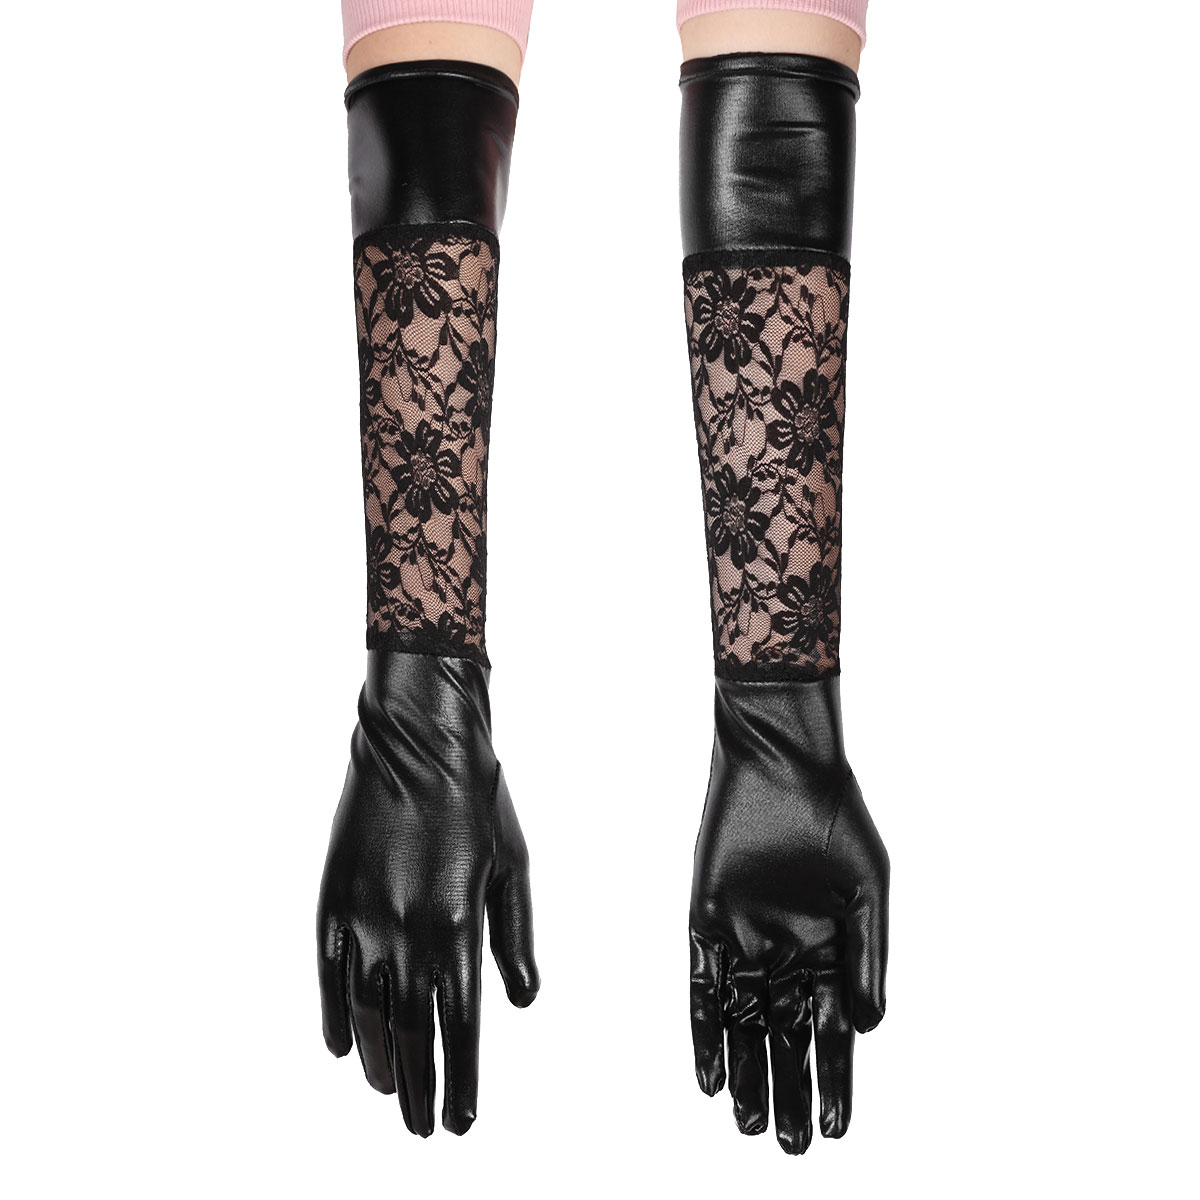 TiaoBug Women Vintage Stretchy Tulle Or Patent Leather Long Gloves Mittens For Ladies Evening Party Dress Costume Accessories